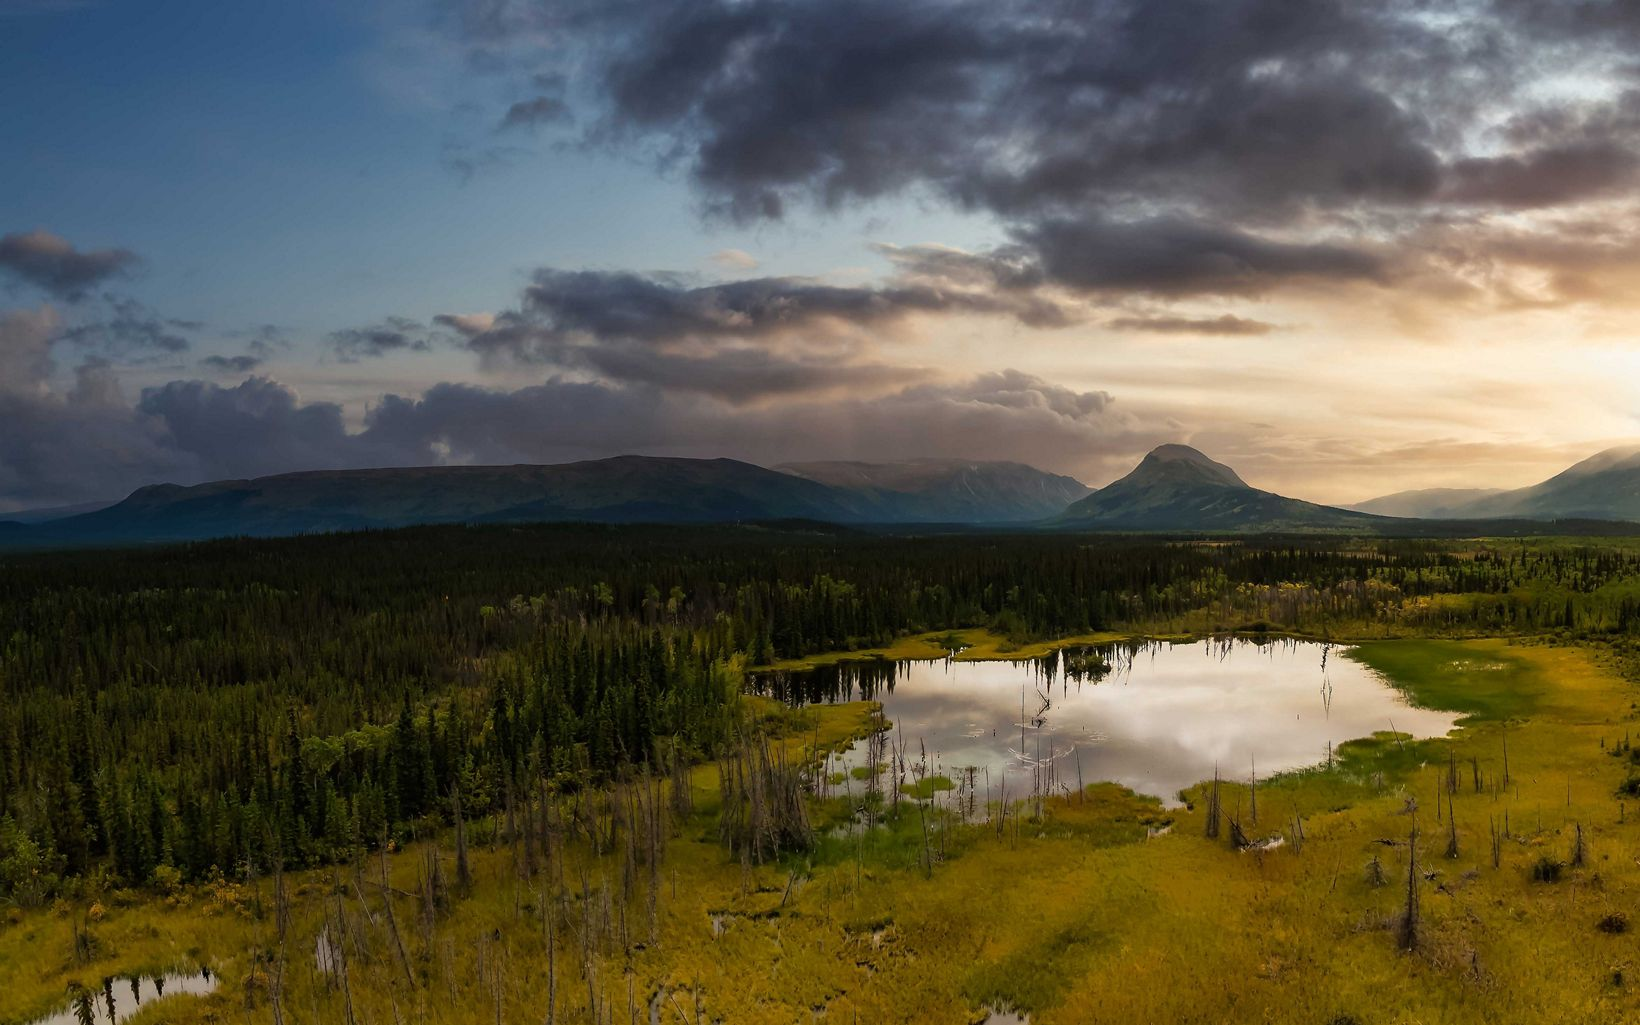 Panoramic view of pond and marshland, surrounded by forest and mountains in Yukon, Canada.